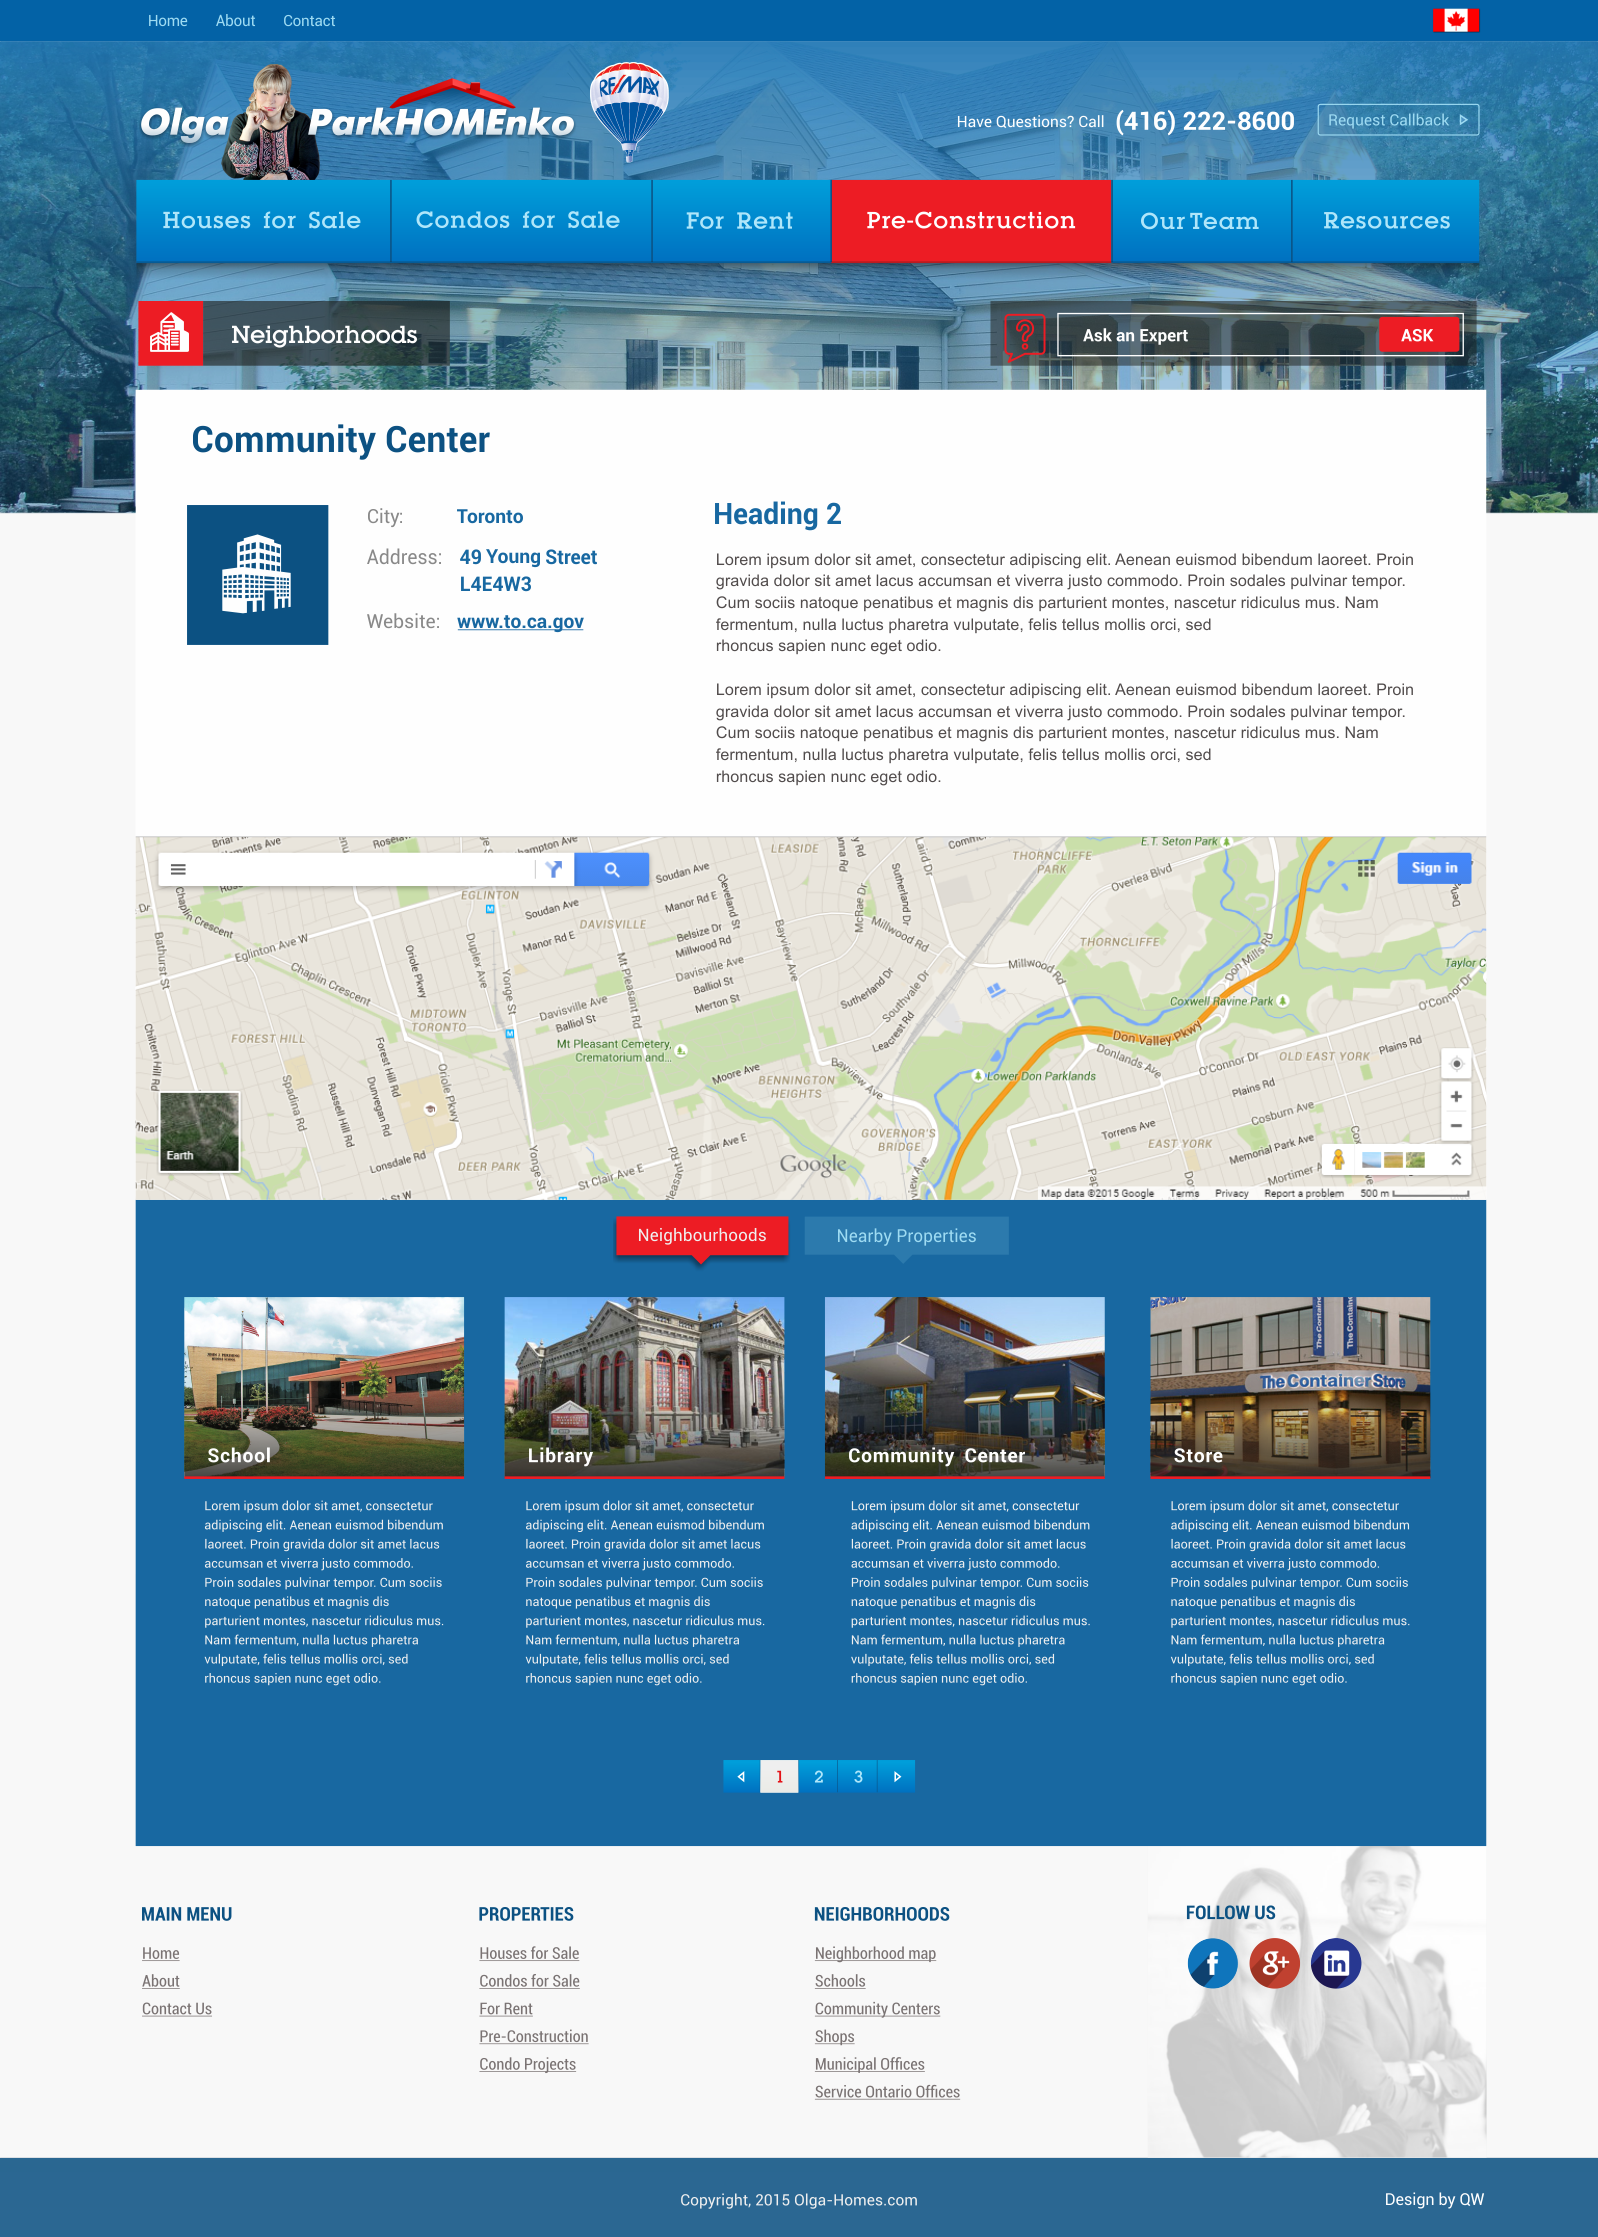 olga-resources-neighborhoods-location-page